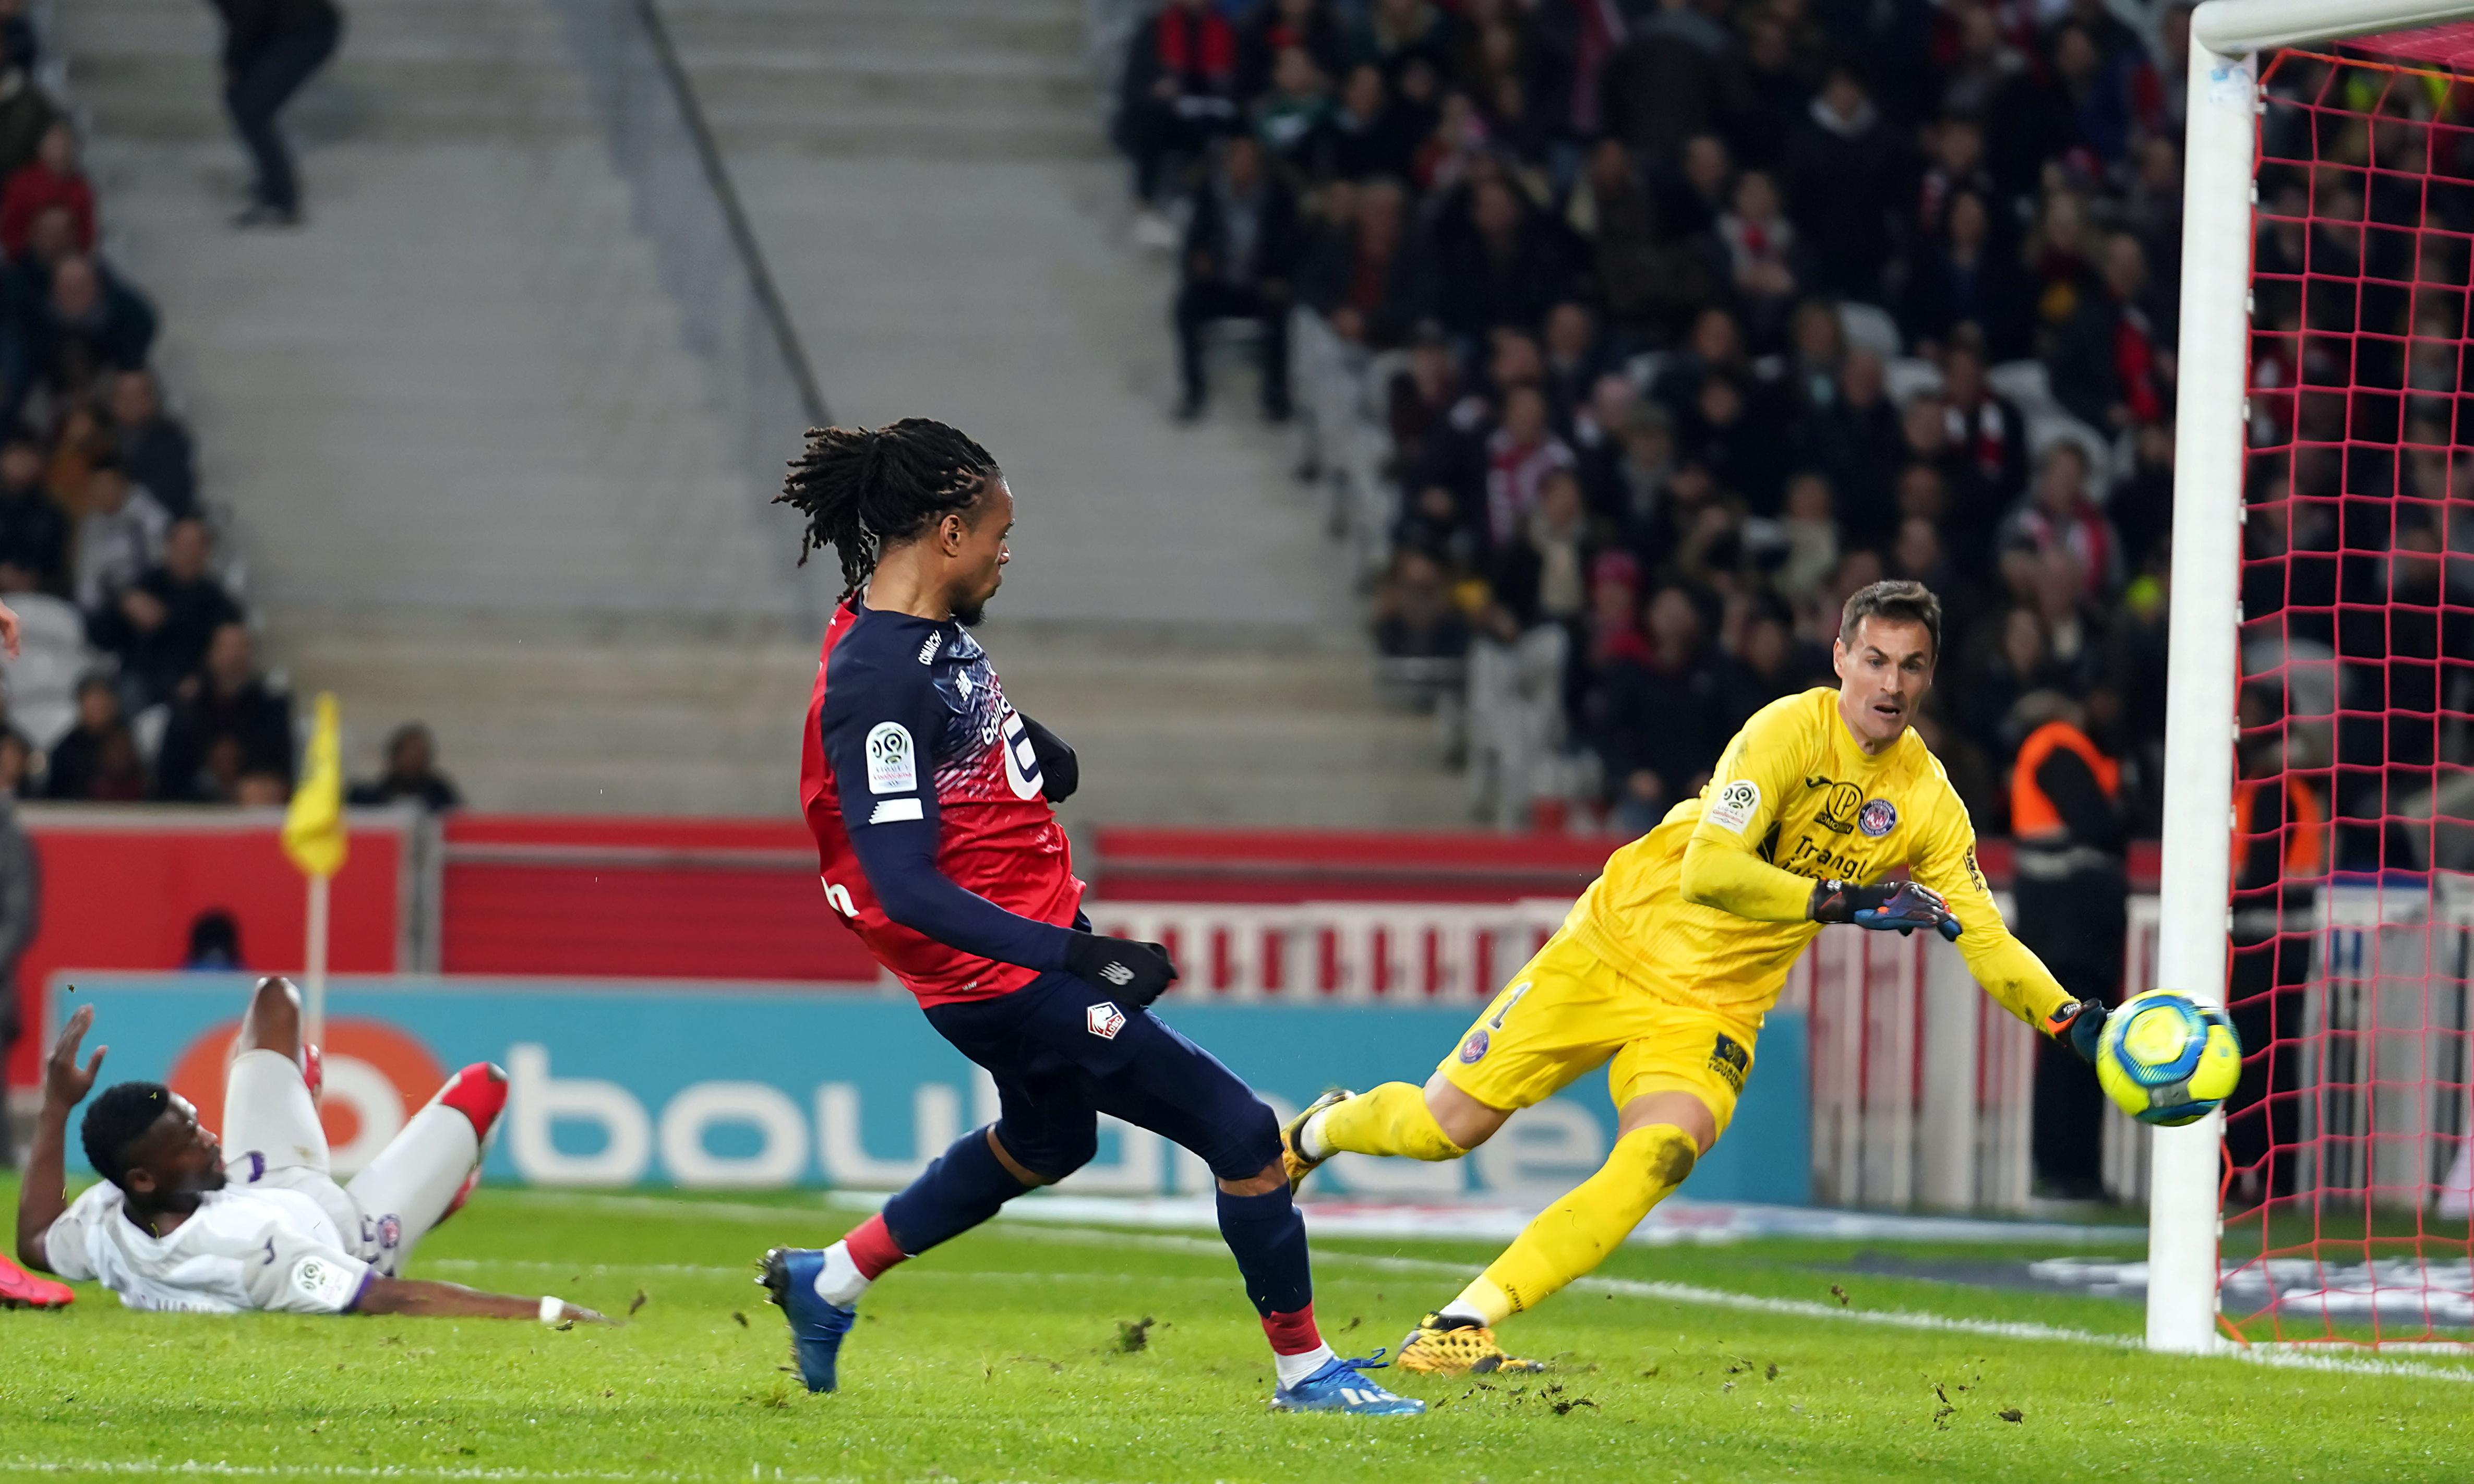 Loïc Rémy has found his voice – and his scoring boots – at Lille